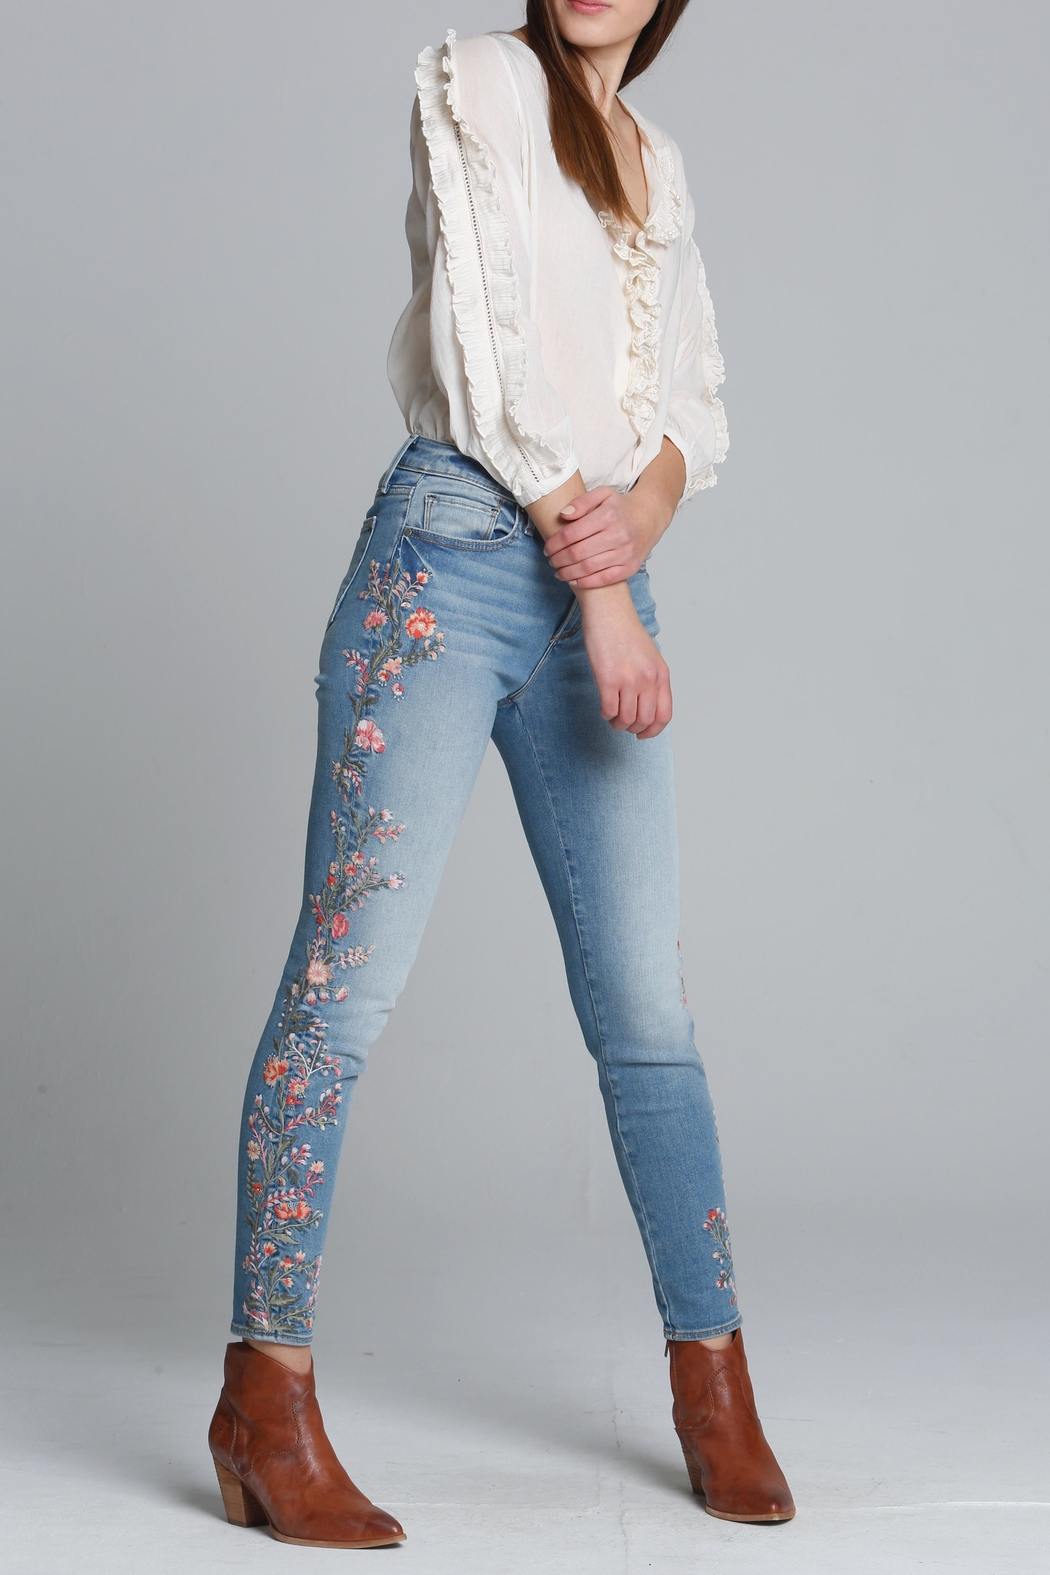 Driftwood Floral Embroidered Jeans - Main Image